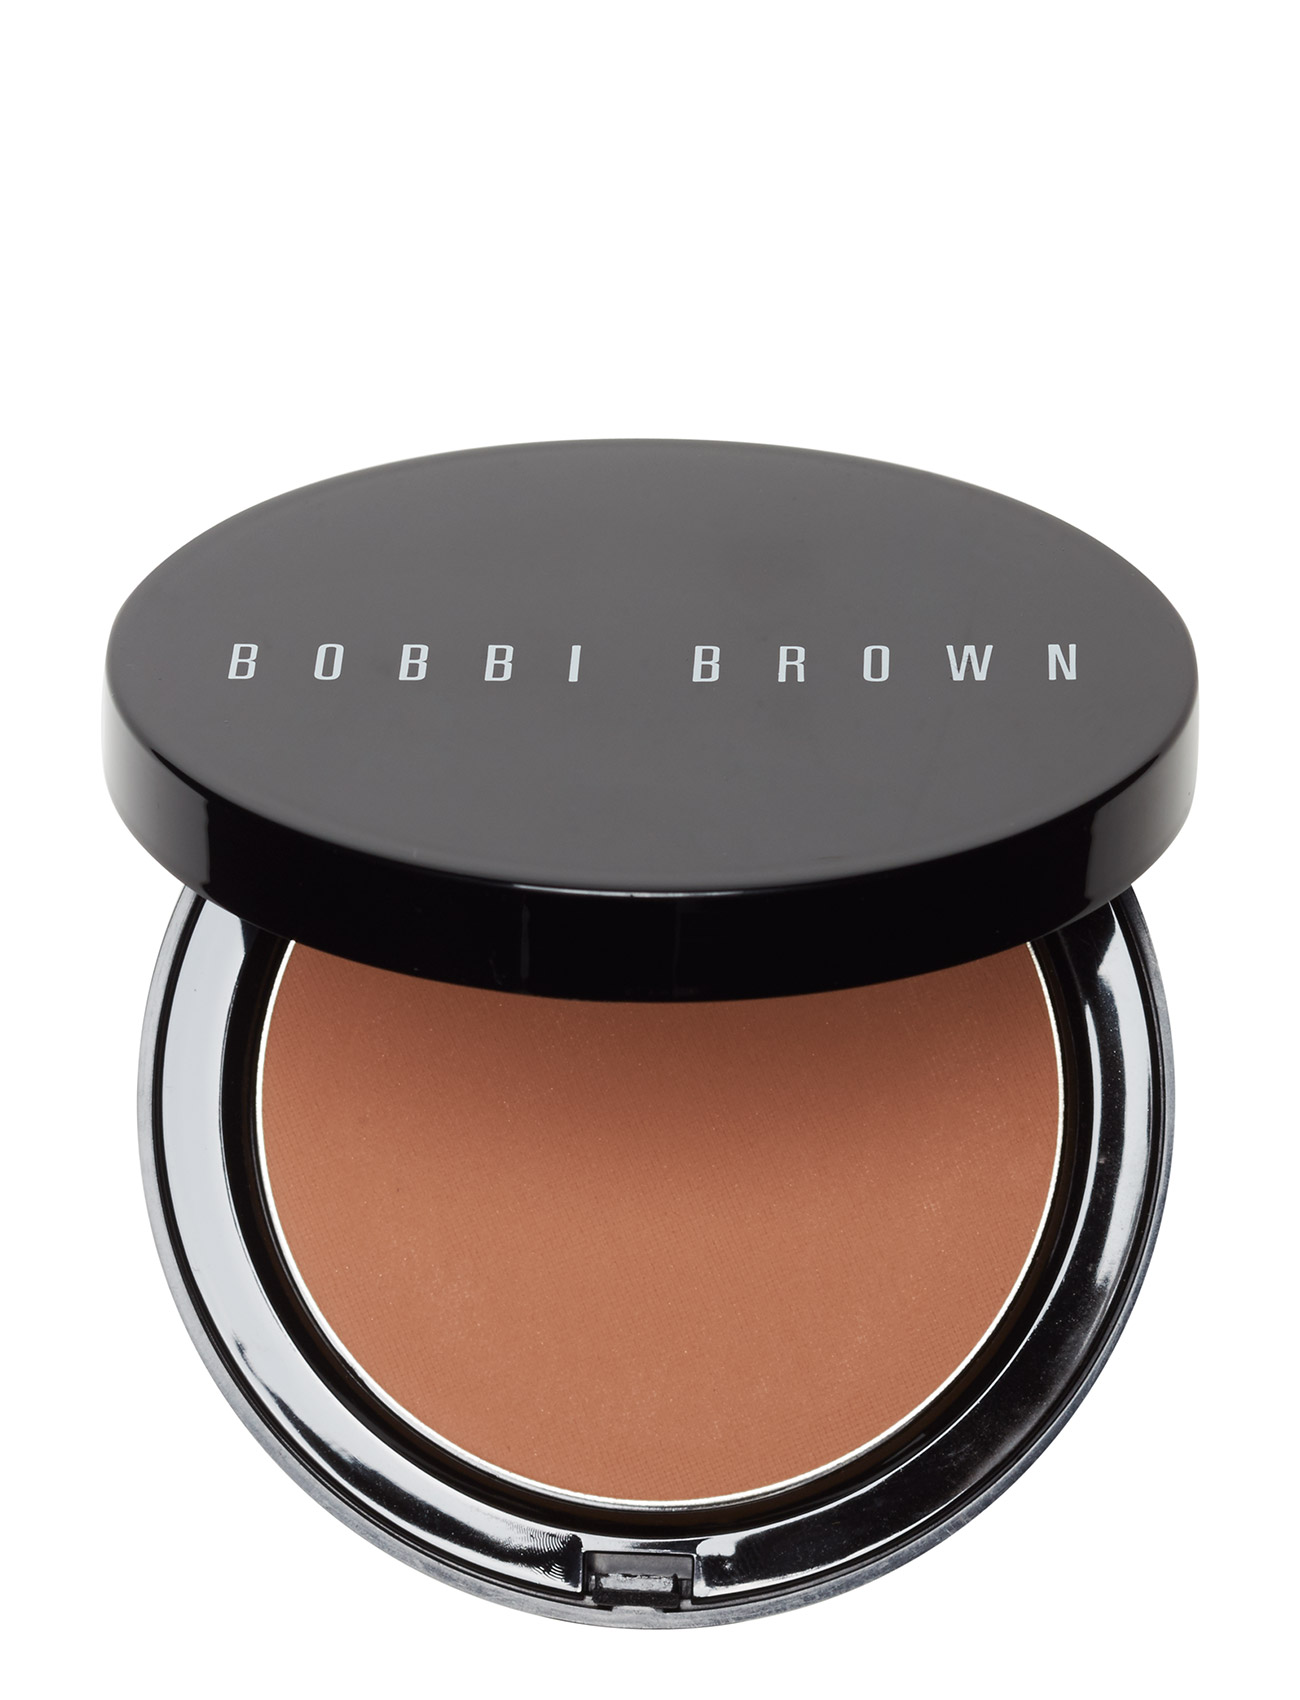 bobbi brown Bronzing powder, medium fra boozt.com dk